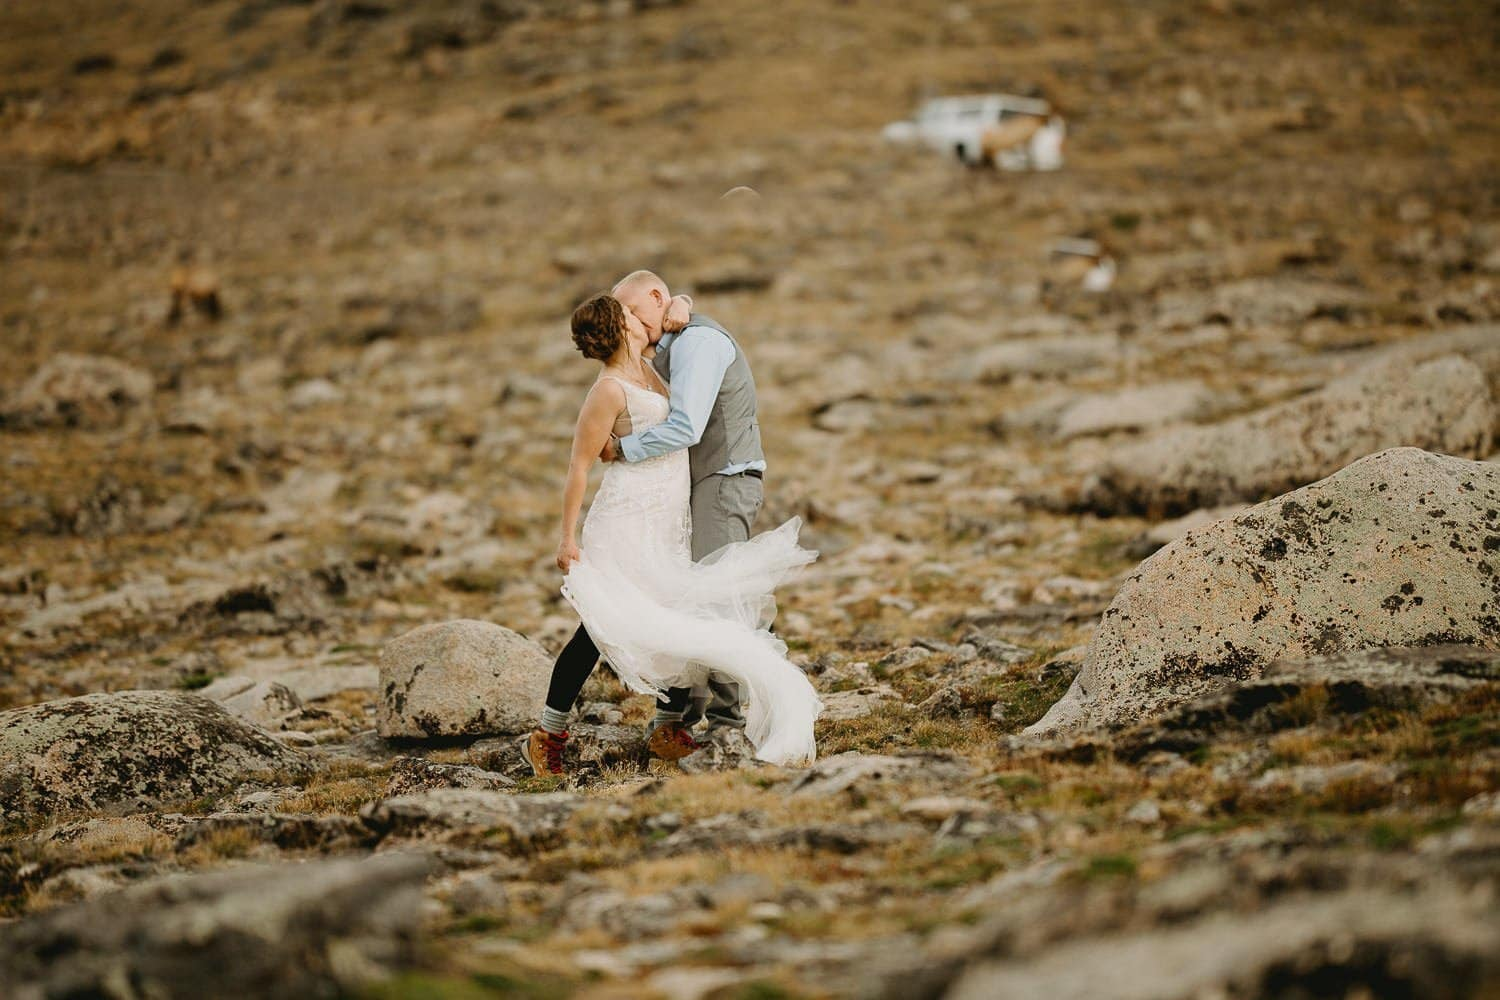 ROCKY MOUNTAIN ADVENTURE ELOPEMENT|ALPINE TUNDRA ELOPEMENT|DANA+JEREMY|ROCKY MOUNTAIN NATIONAL PARK ADVENTURES | SPRAIGUE LAKE CEREMONY|JUSTYNA E BUTLER PHOTOGRAPHY|ROCKY MOUNTAIN ADVENTURE ELOPEMENT PHOTOGRAPHER|DESTINATION ELOPEMENT PHOTOGRAPHERROCKY MOUNTAIN ADVENTURE ELOPEMENT|ALPINE TUNDRA ELOPEMENT|DANA+JEREMY|ROCKY MOUNTAIN NATIONAL PARK ADVENTURES | SPRAIGUE LAKE CEREMONY|JUSTYNA E BUTLER PHOTOGRAPHY|ROCKY MOUNTAIN ADVENTURE ELOPEMENT PHOTOGRAPHER|DESTINATION ELOPEMENT PHOTOGRAPHER